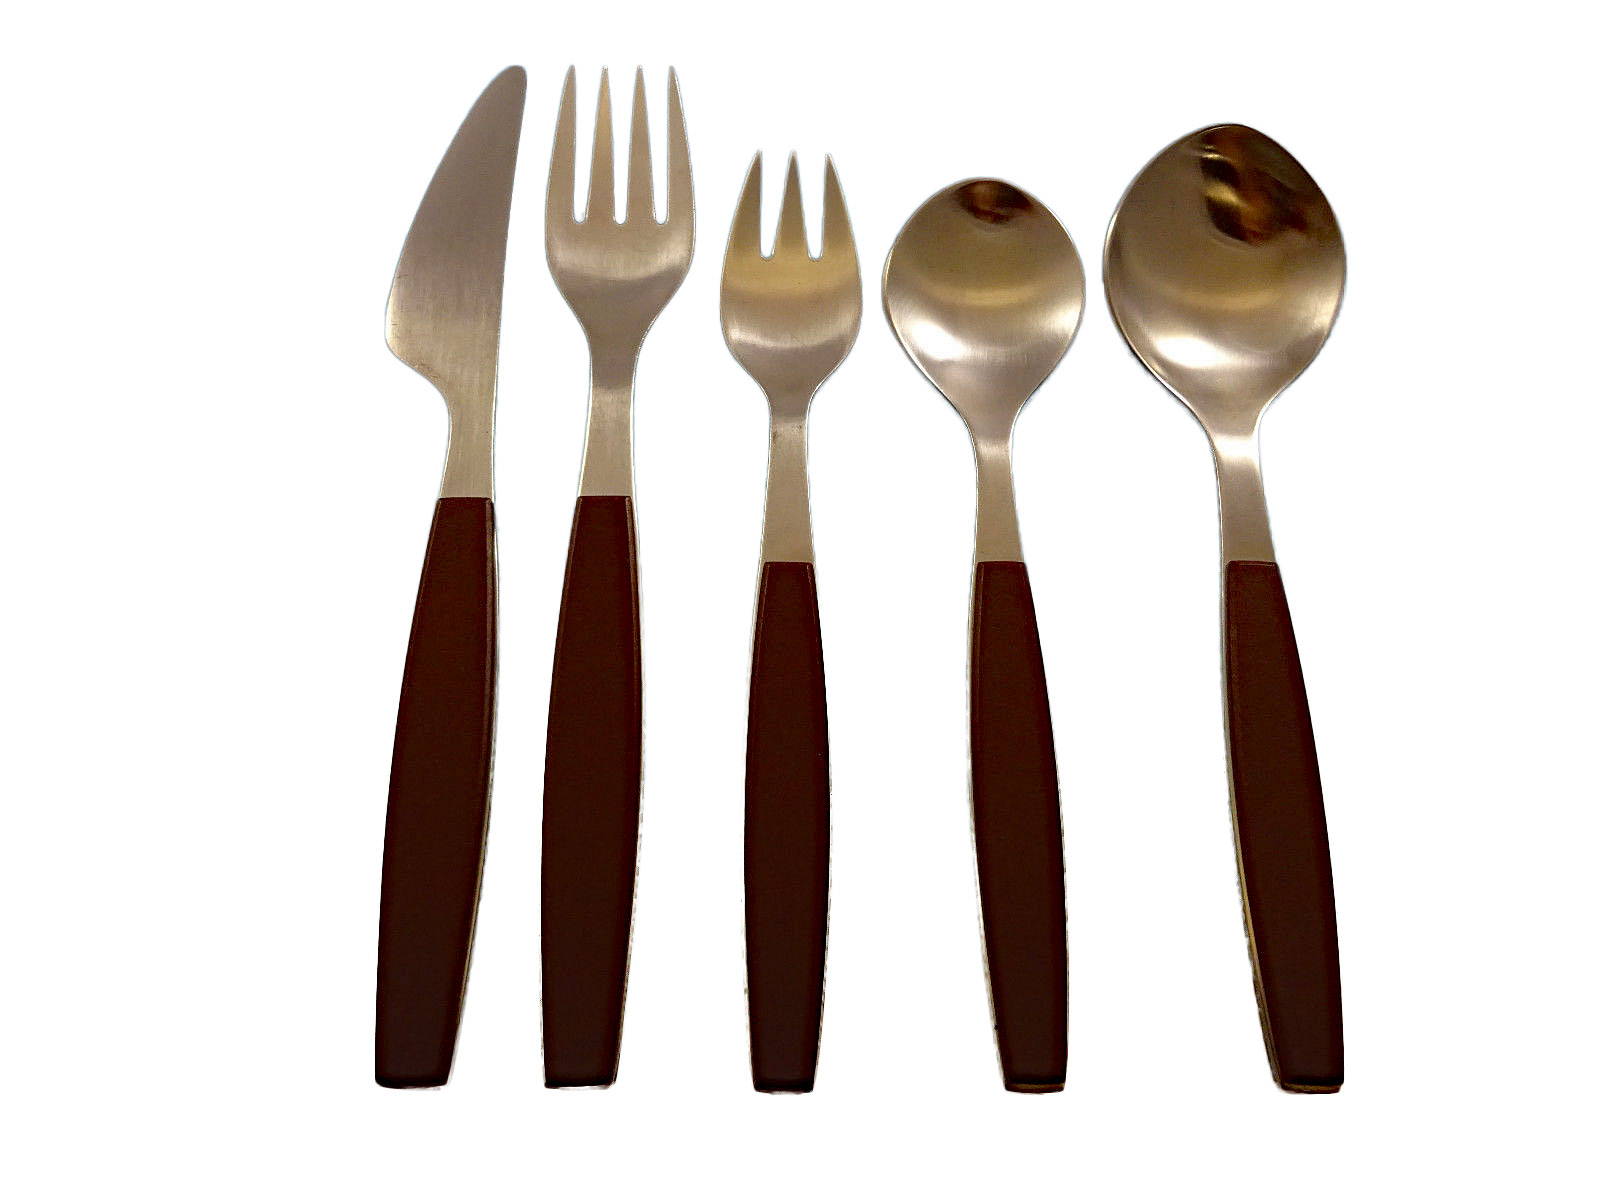 Contemporary Stainless Steel Flatware Strata Brown By Georg Jensen Stainless Steel Flatware Set